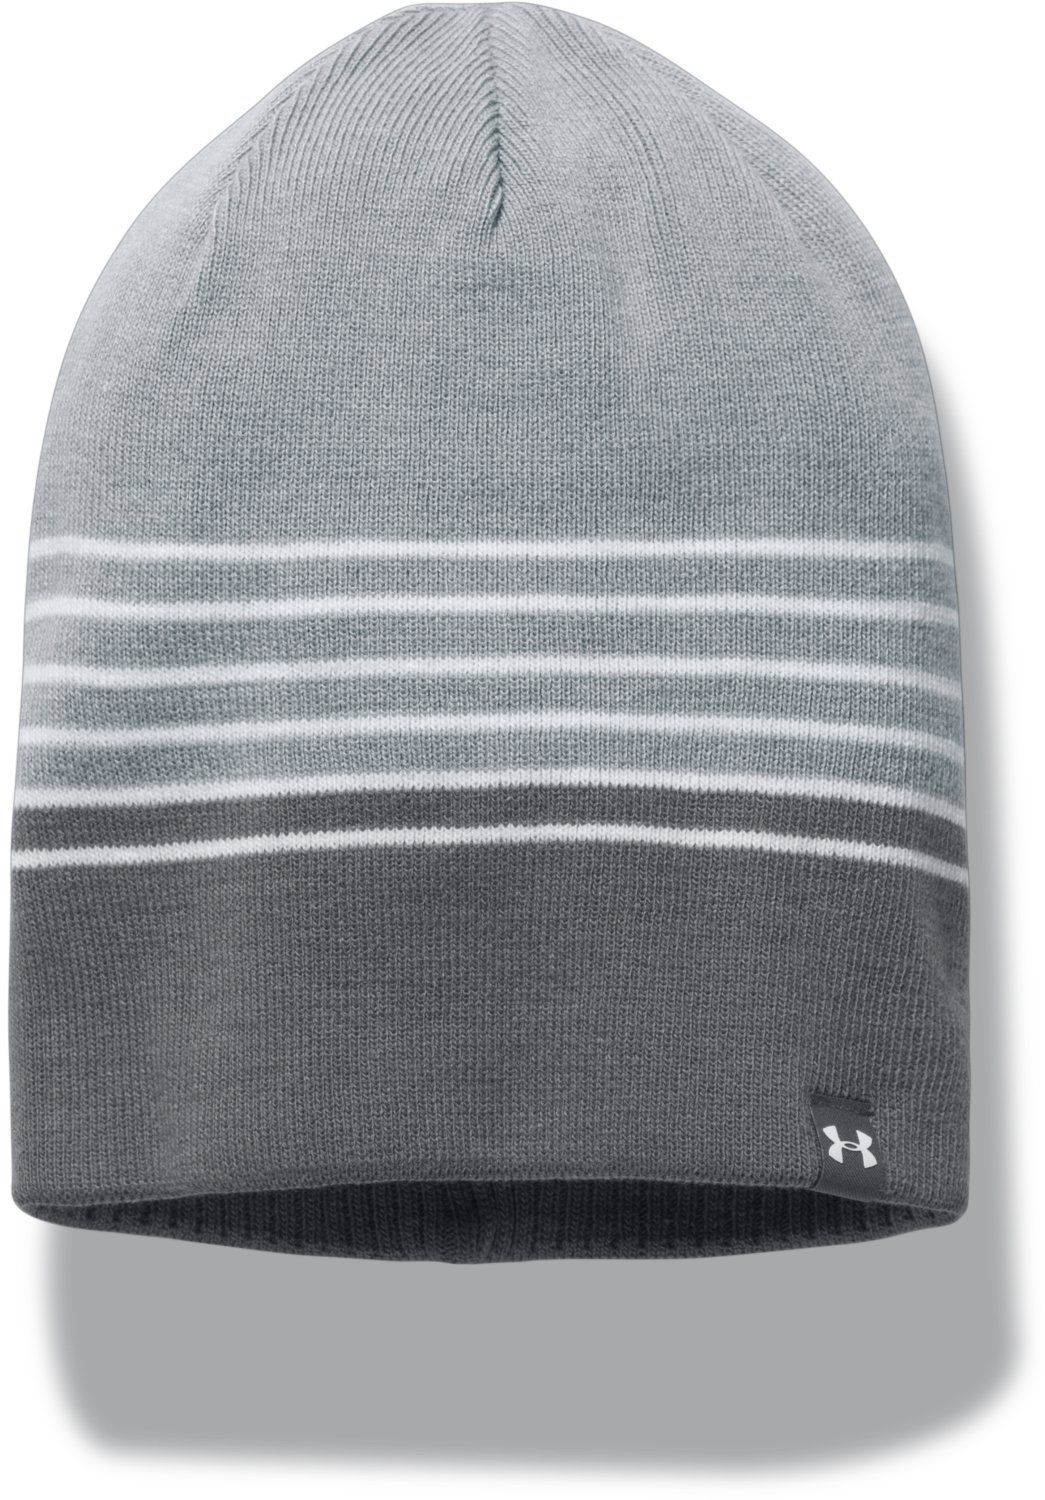 Under Armour Czapka Men's 4 in 1 Beanie 2.0 szara (1300077 941) ID produktu: 1589508